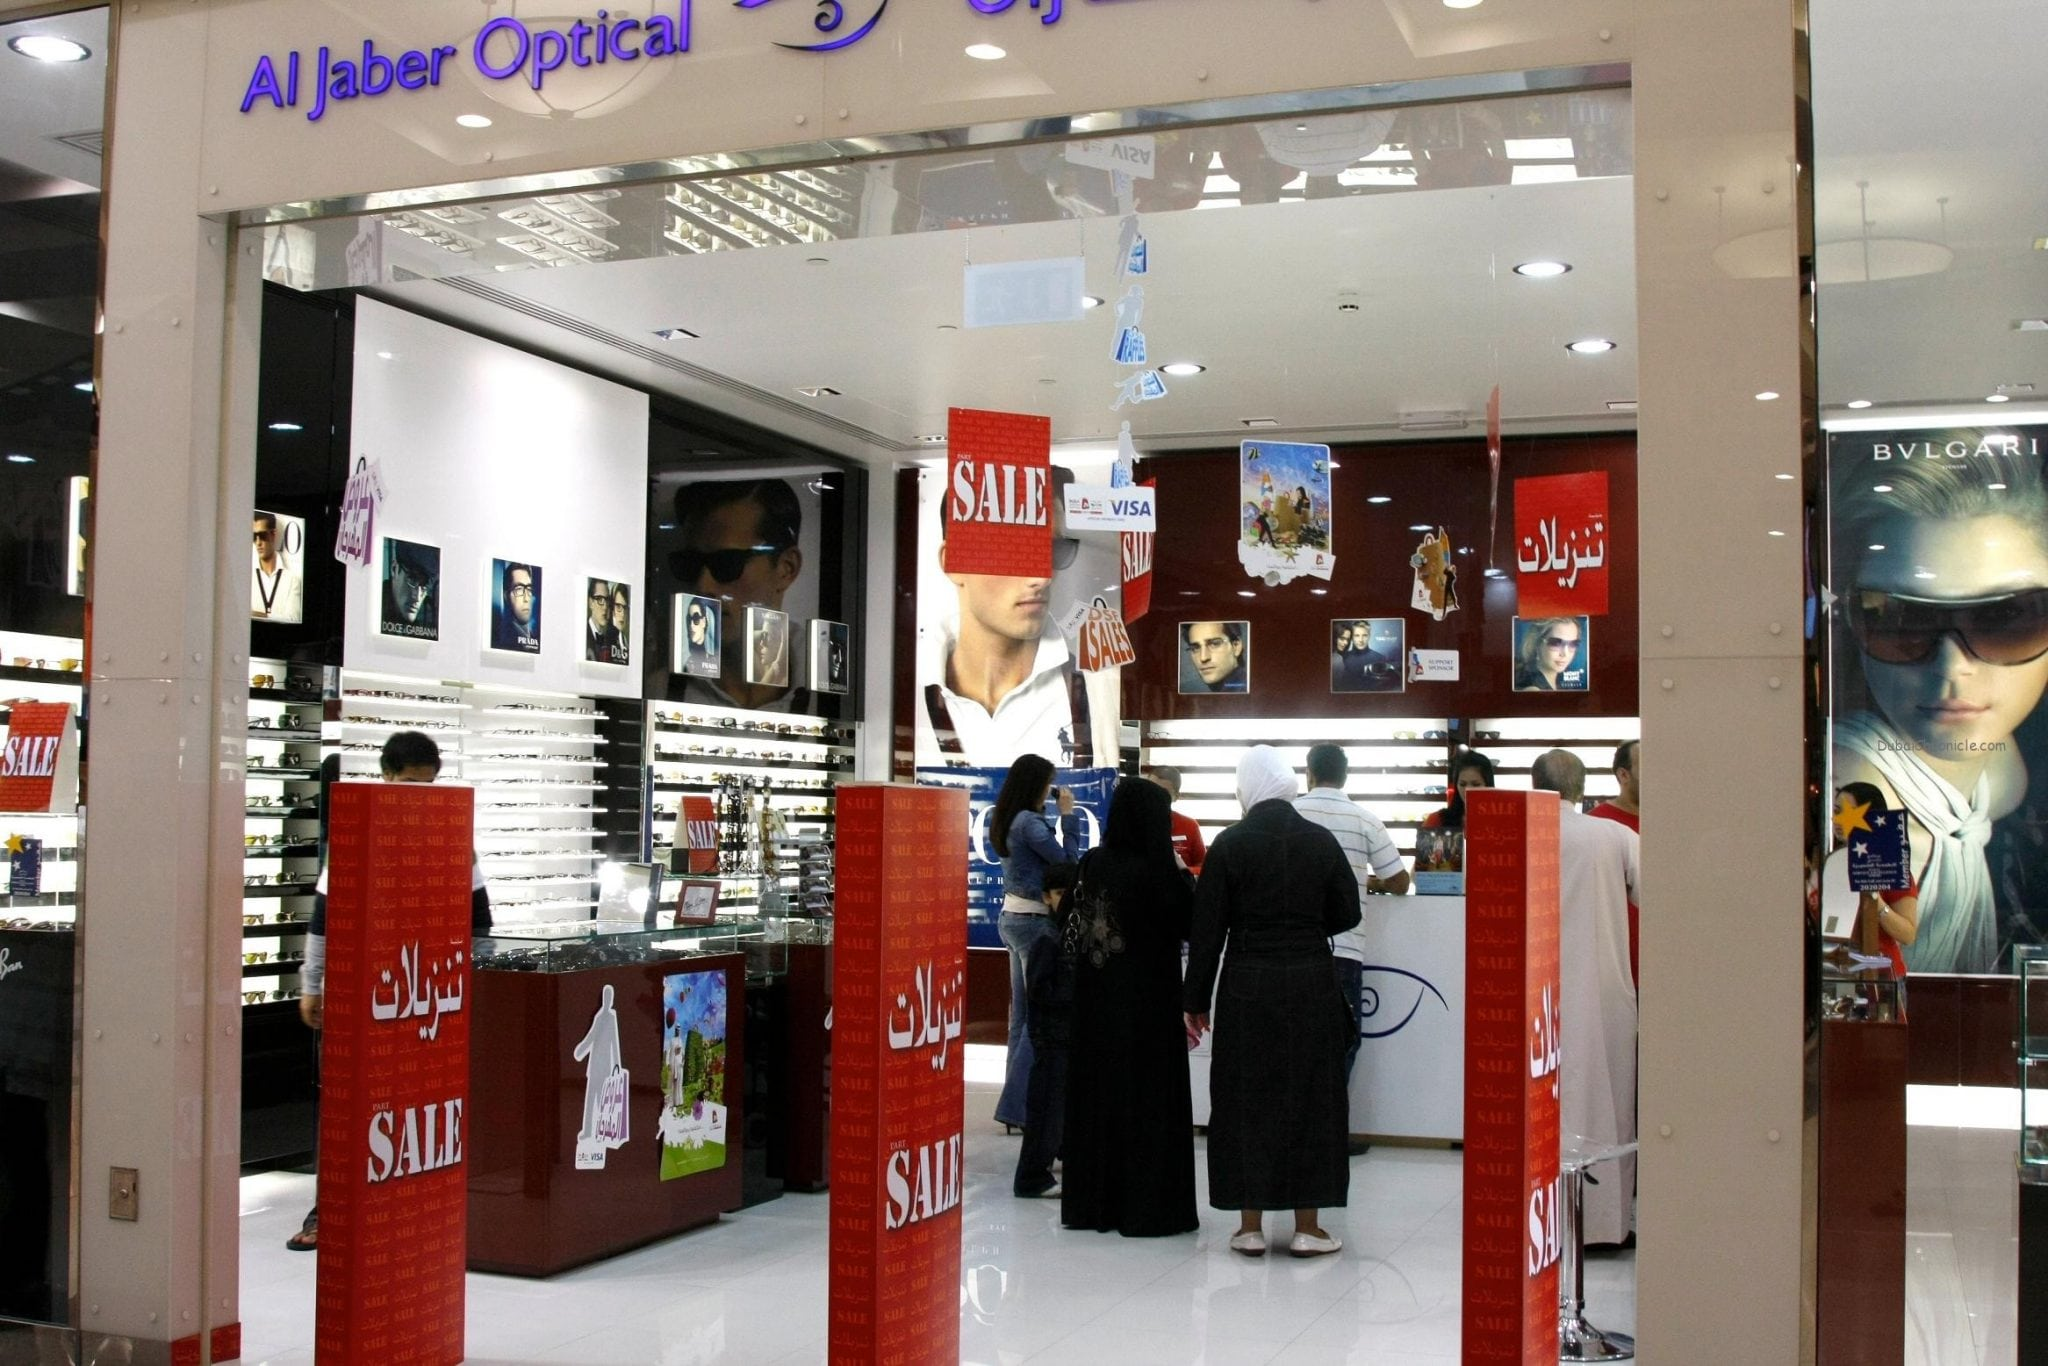 Dubai Inflation Rose 3.53% in August